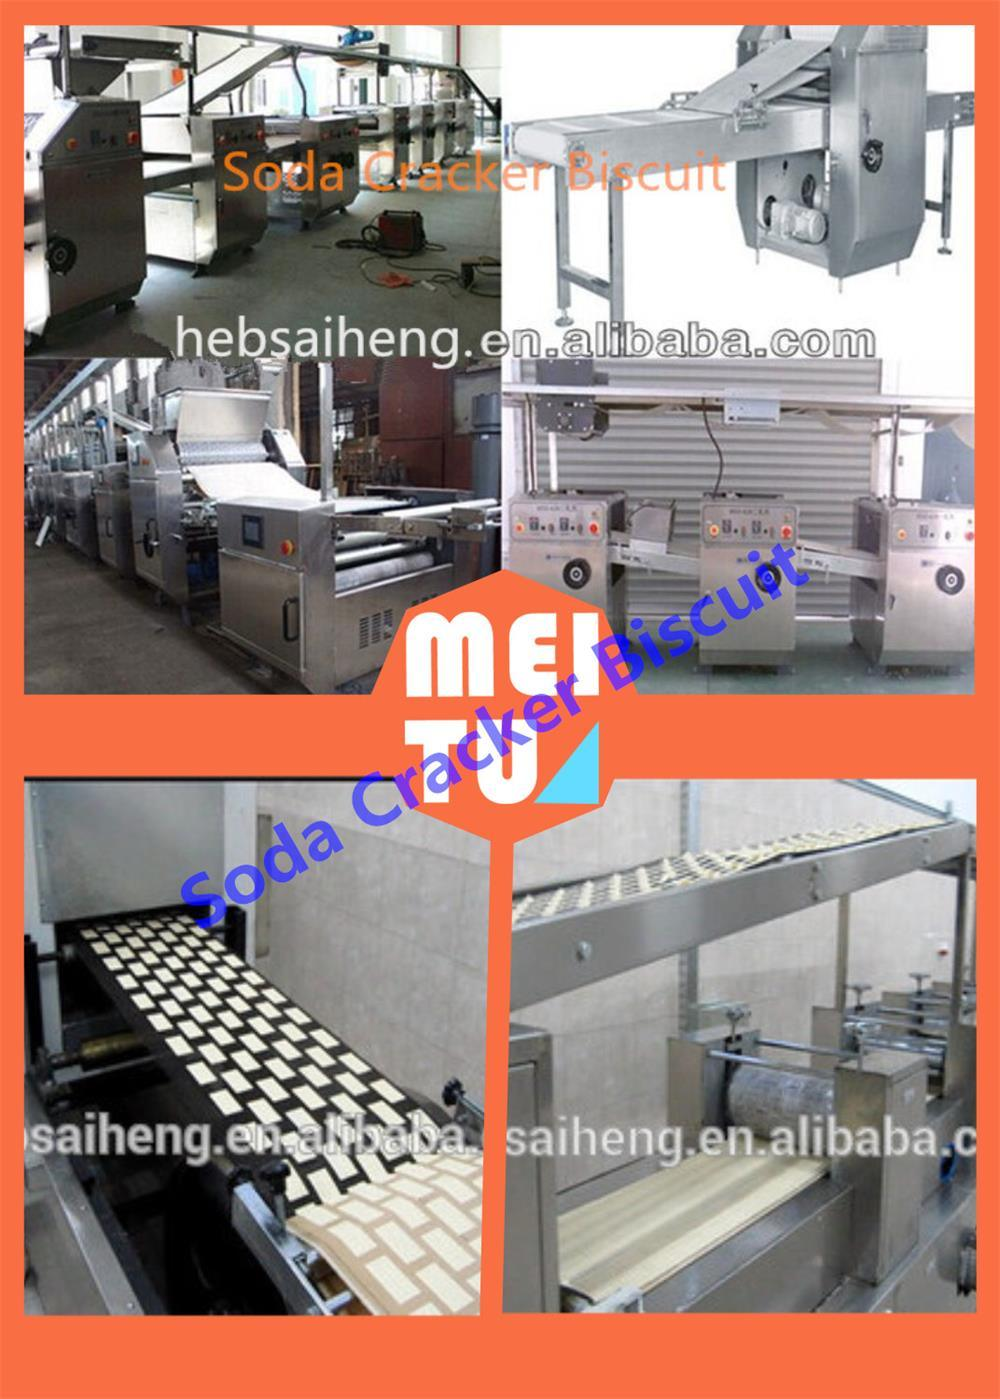 2015 Sh 750kg/H Hot Sale Large Capacity Full-Automatic Soda Cracker Biscuit Production Line